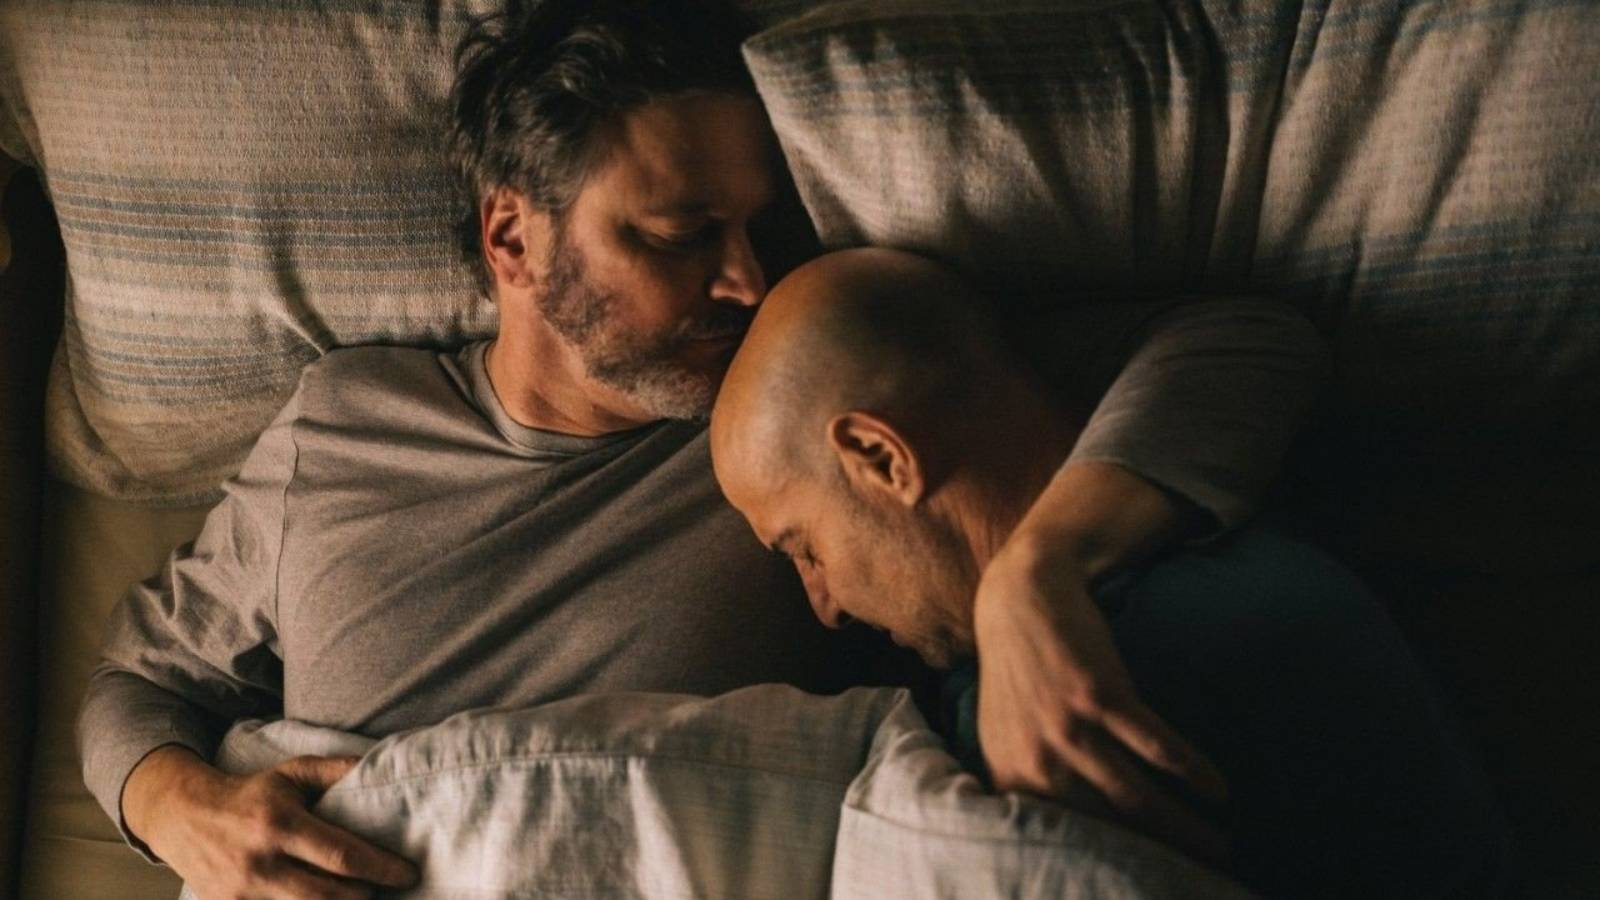 Simply superb: Firth and Tucci's haunting, heartbreaking drama